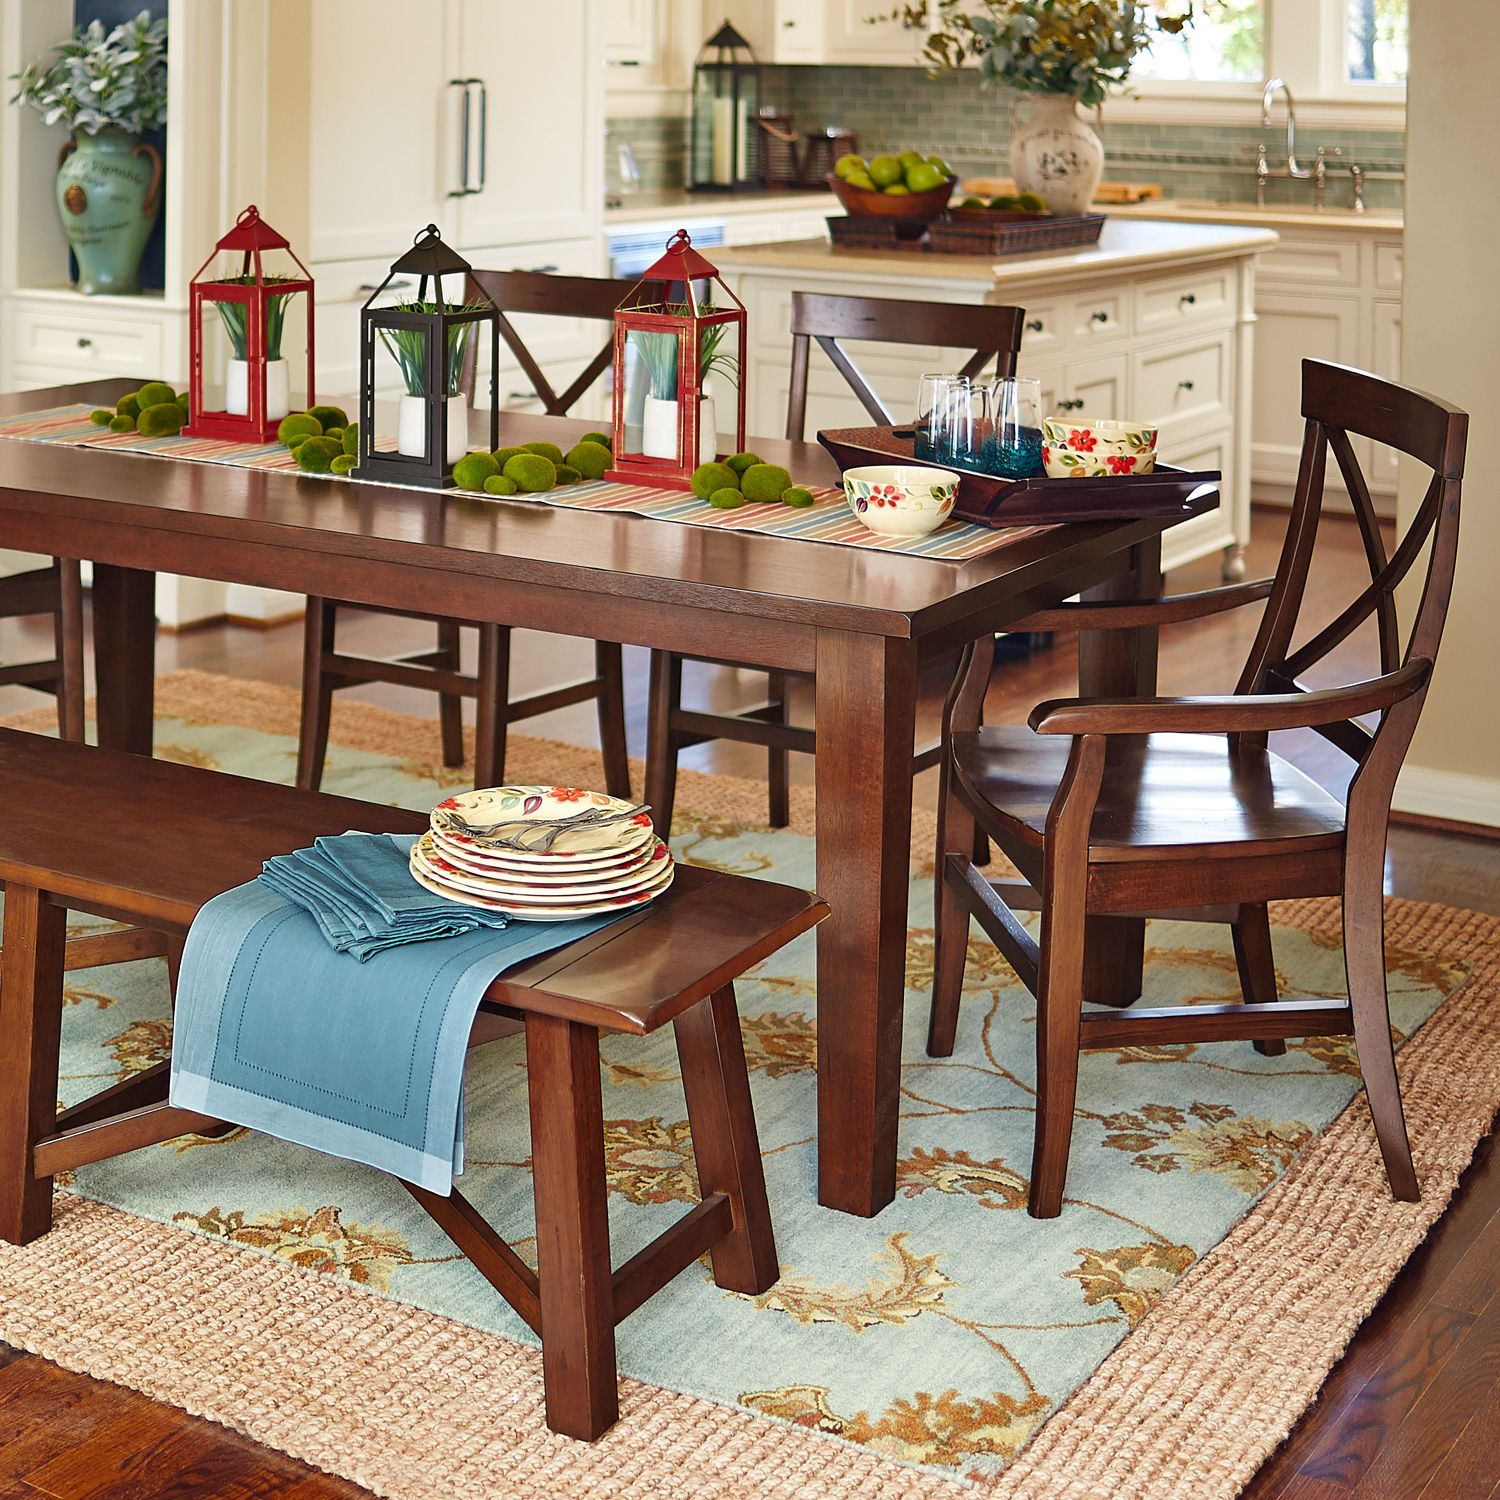 Torrance Dining Table Mahogany Brown 84 Dining Room Decor Brown Dining Table Dining Room Table